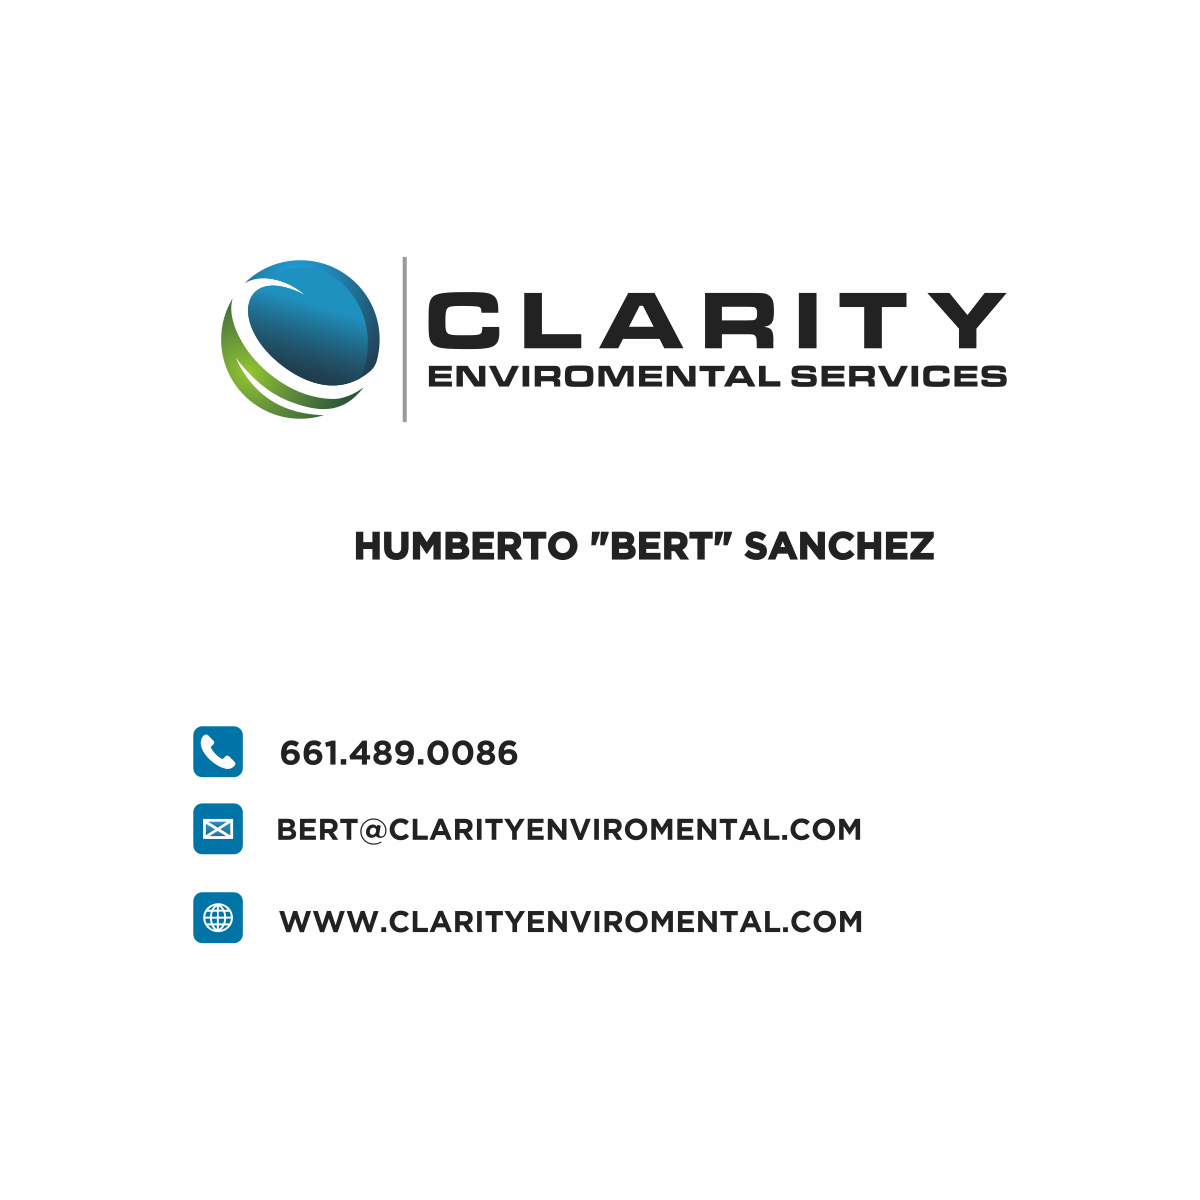 Logo Design work done for Clarity